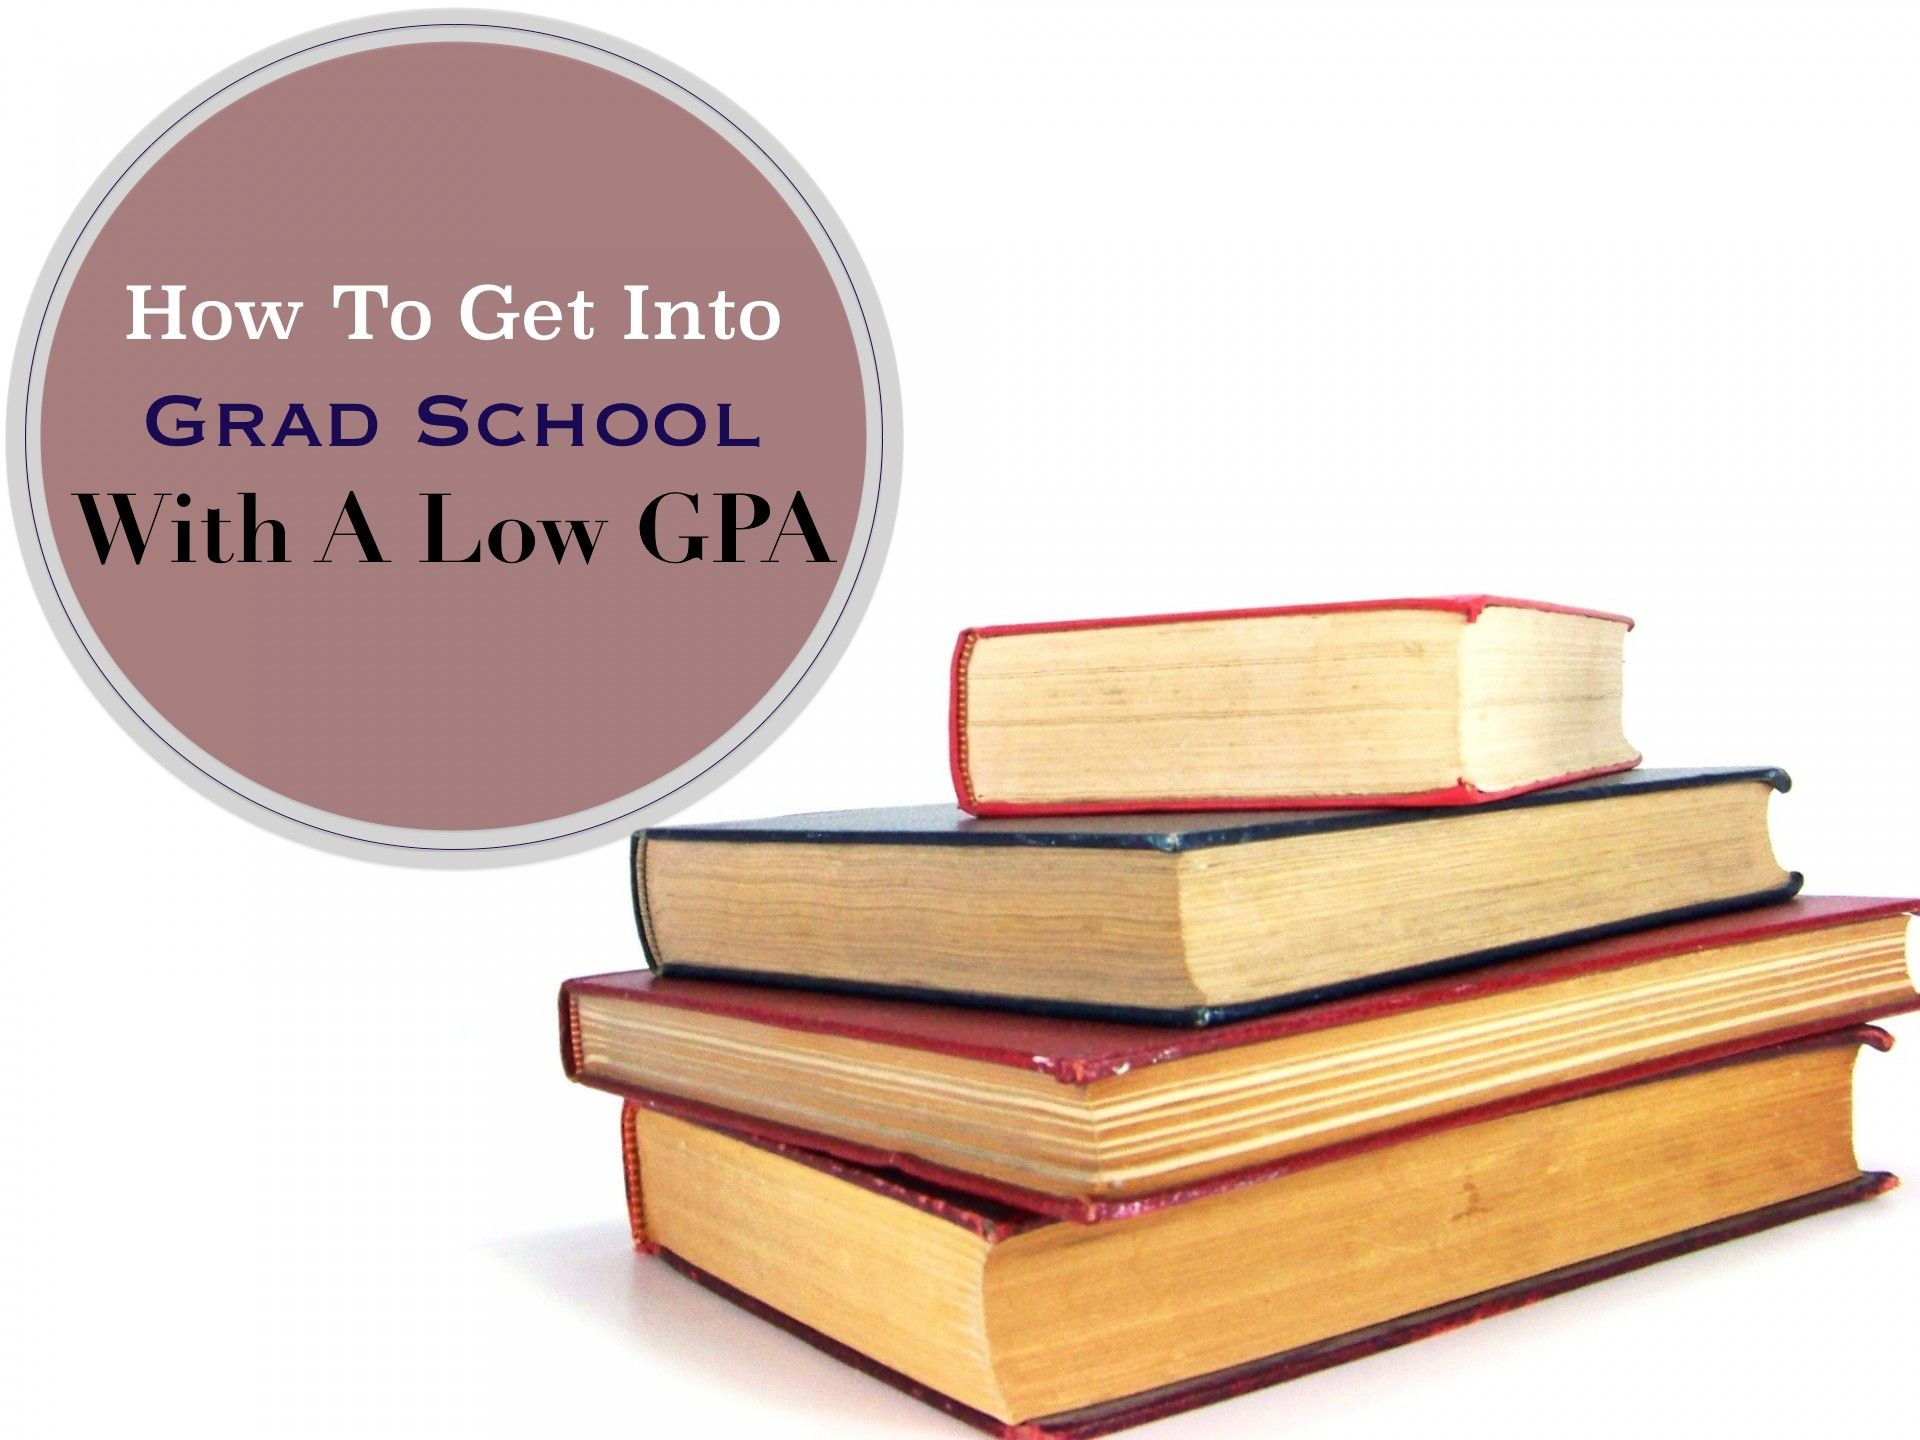 10 Tips on how to get into graduate school with a low GPA